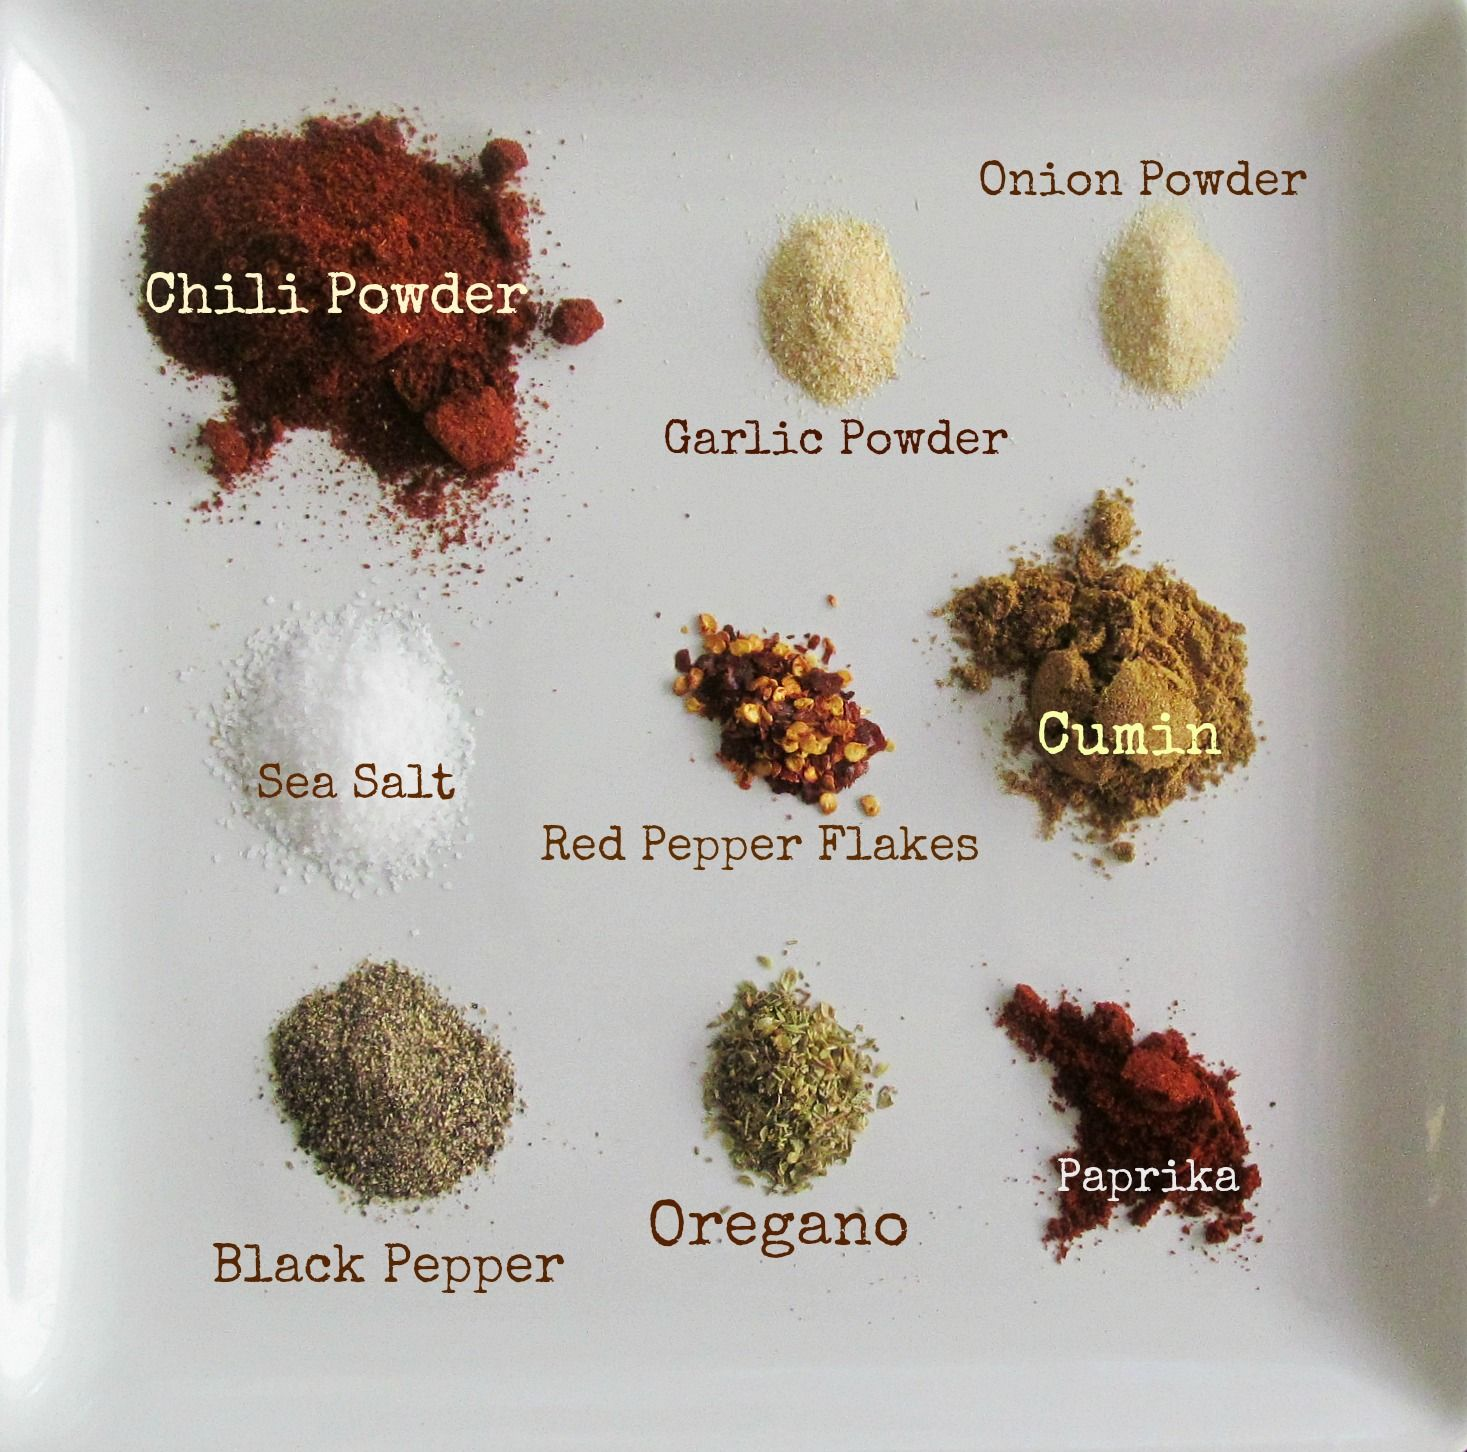 Diy Old El Paso Style Taco Seasoning About Three Tablespoons Of This Mix Is Equal To One Of Those Packets From The S Diy Taco Seasoning Ortega Taco Seasoning